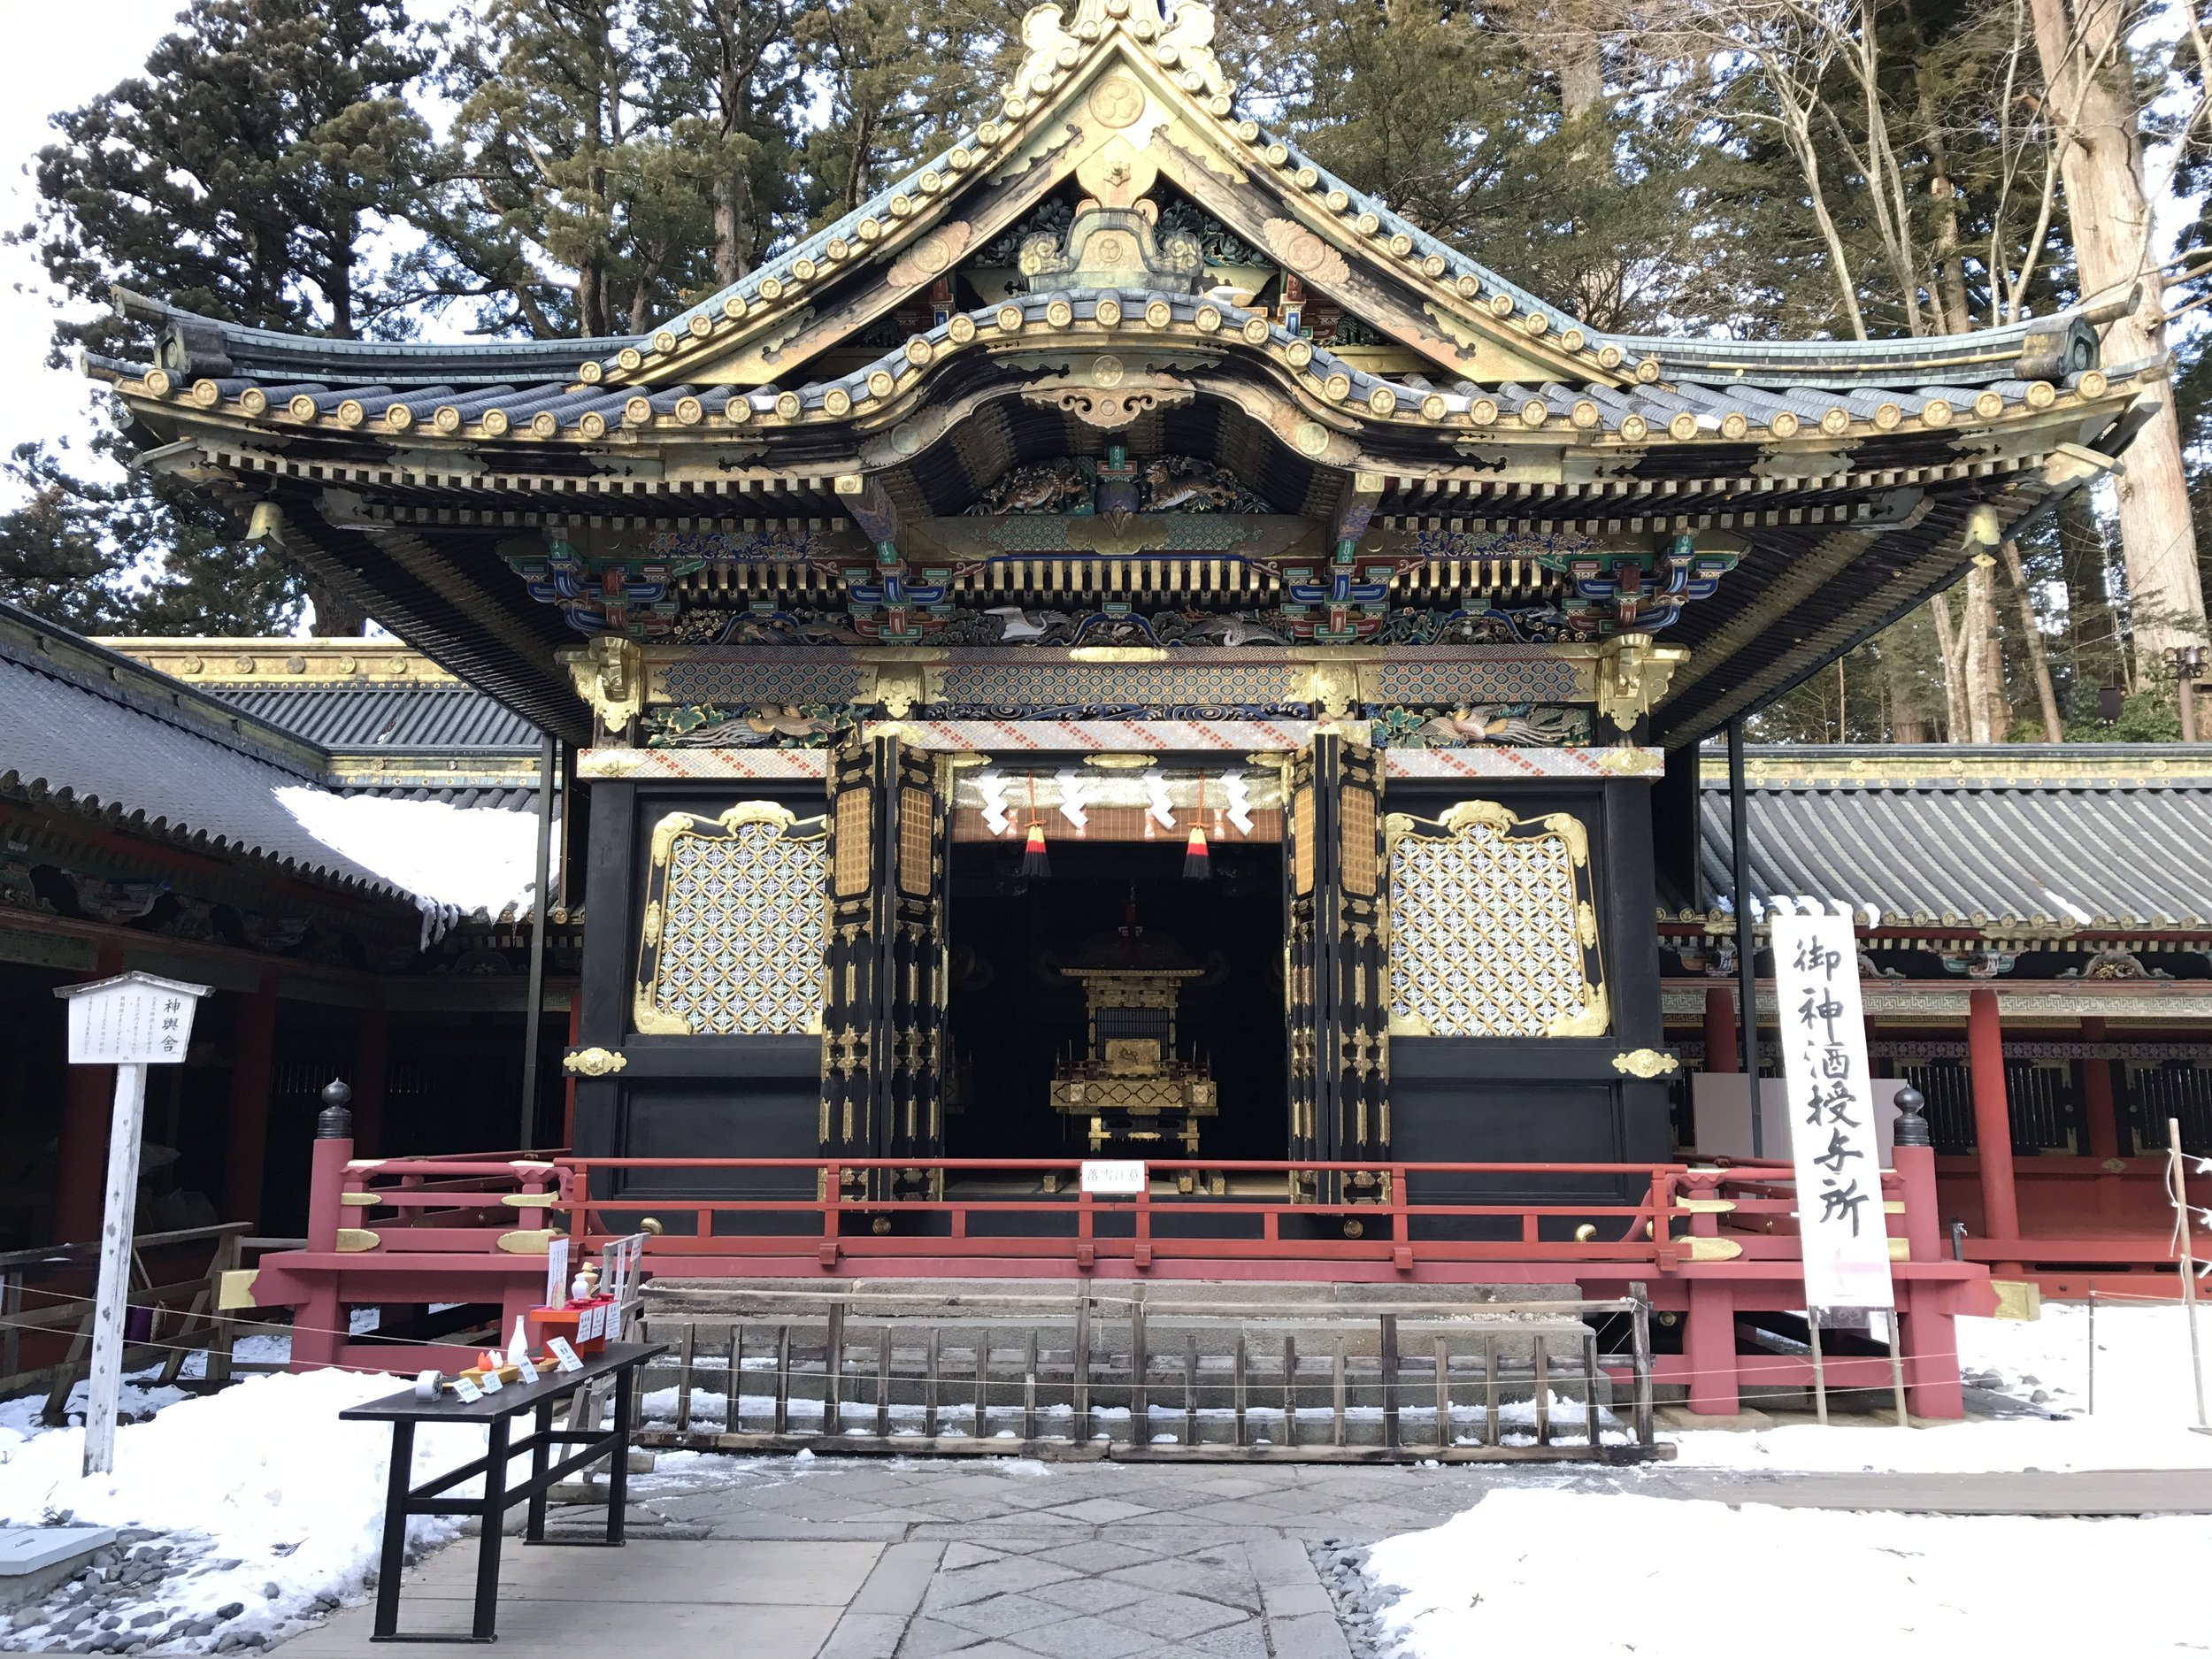 Outside the gate to the inner shrine: ceremony under way